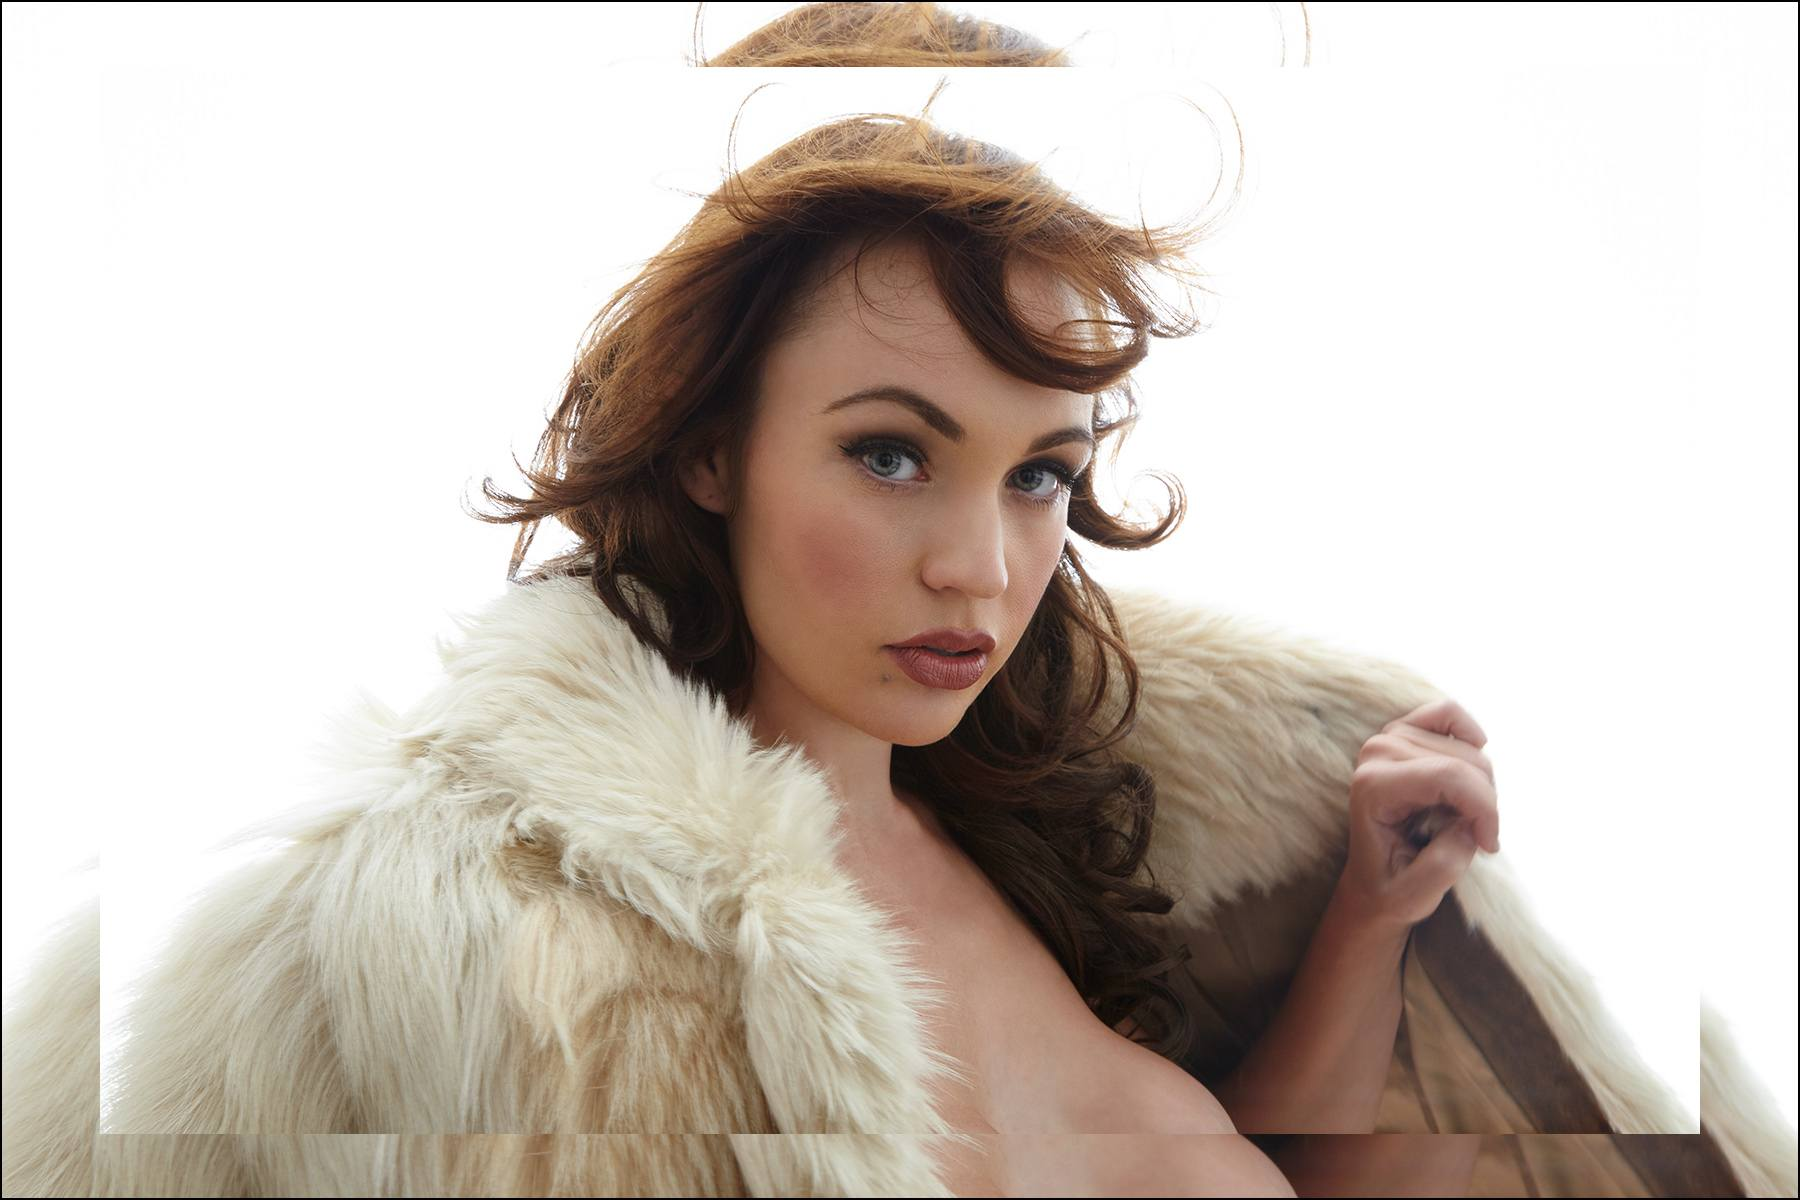 Actress Emily Elicia Low photographed in a vintage fur by Alexander Thompson for Ponyboy magazine NY.